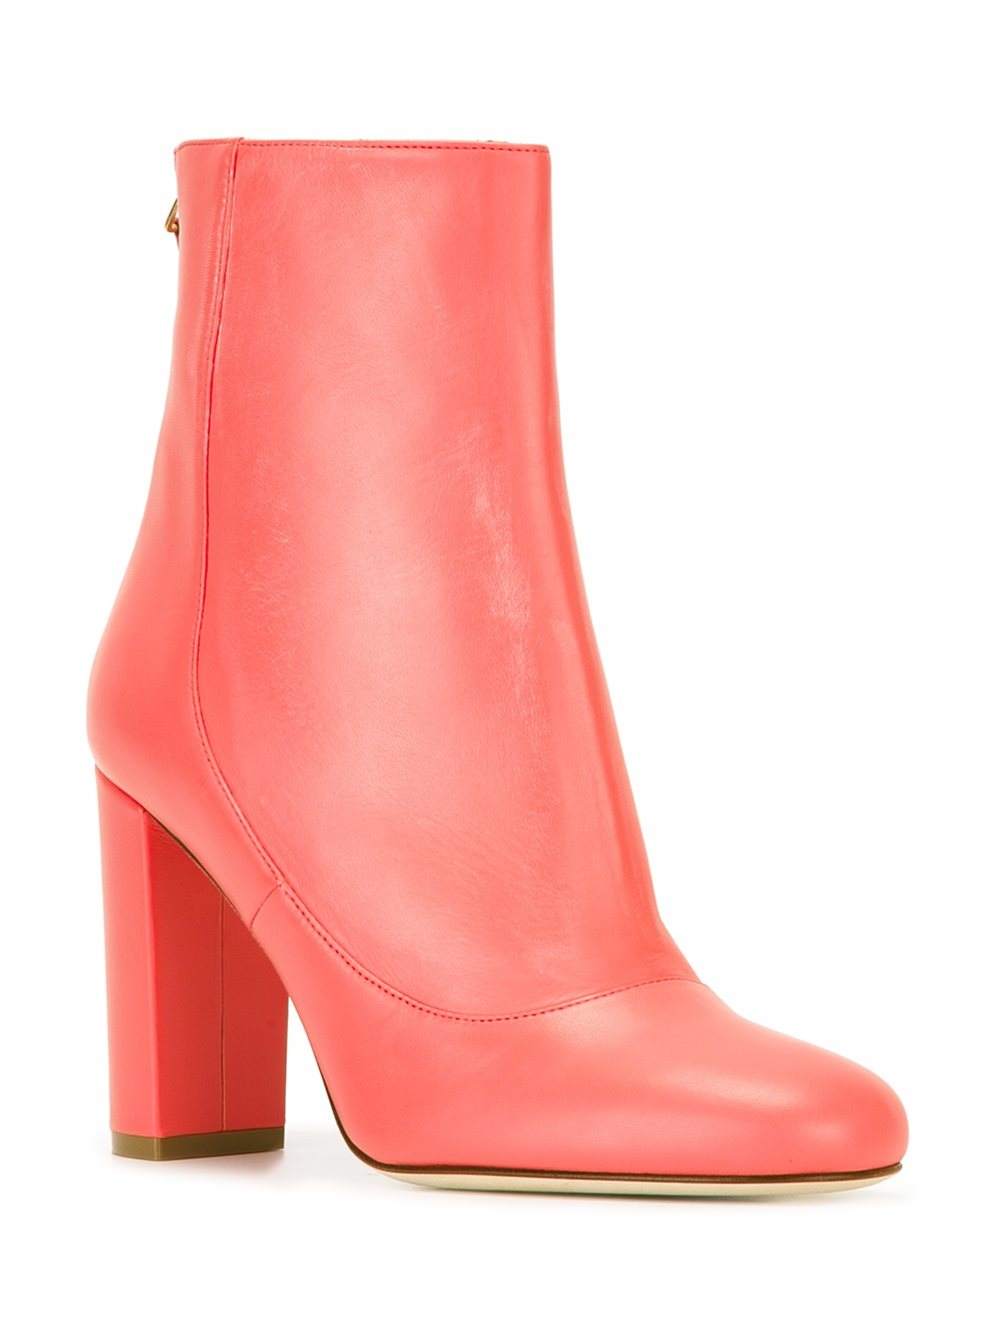 Lyst M Missoni Chunky Heel Ankle Boots In Pink